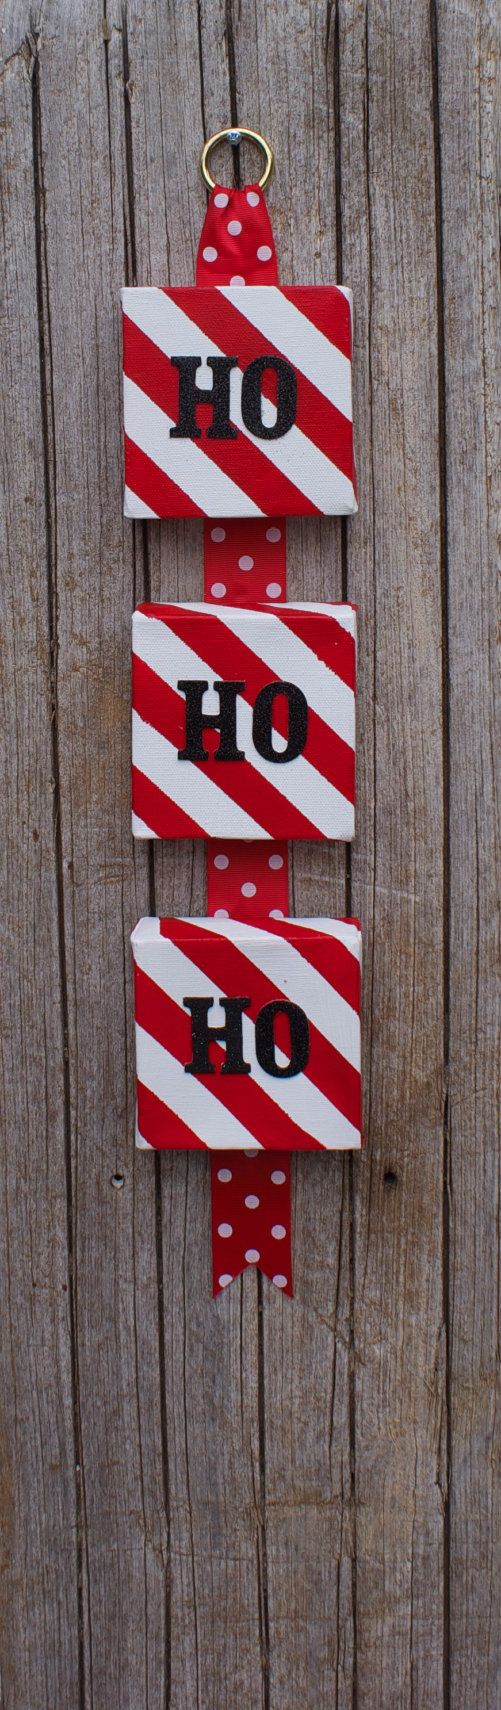 Ho-Ho-Ho Stripes, Canvas Hanging